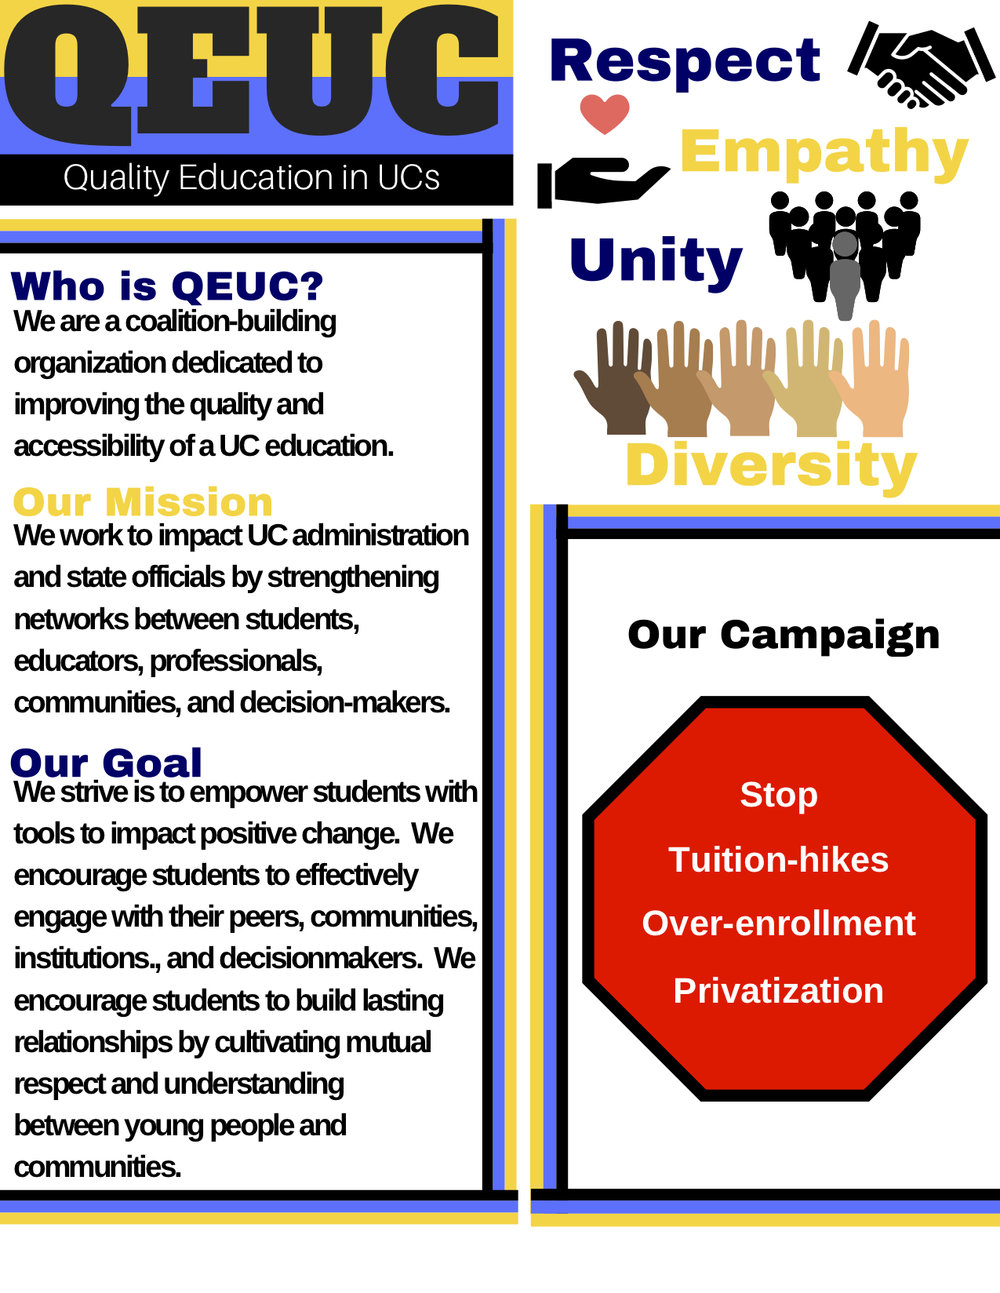 QUEC - Meetings occur weekly on Fridays at 5:30 pm. We meet at McHenry Library, room 3372.Contact usantill@ucsc.edu for more info.